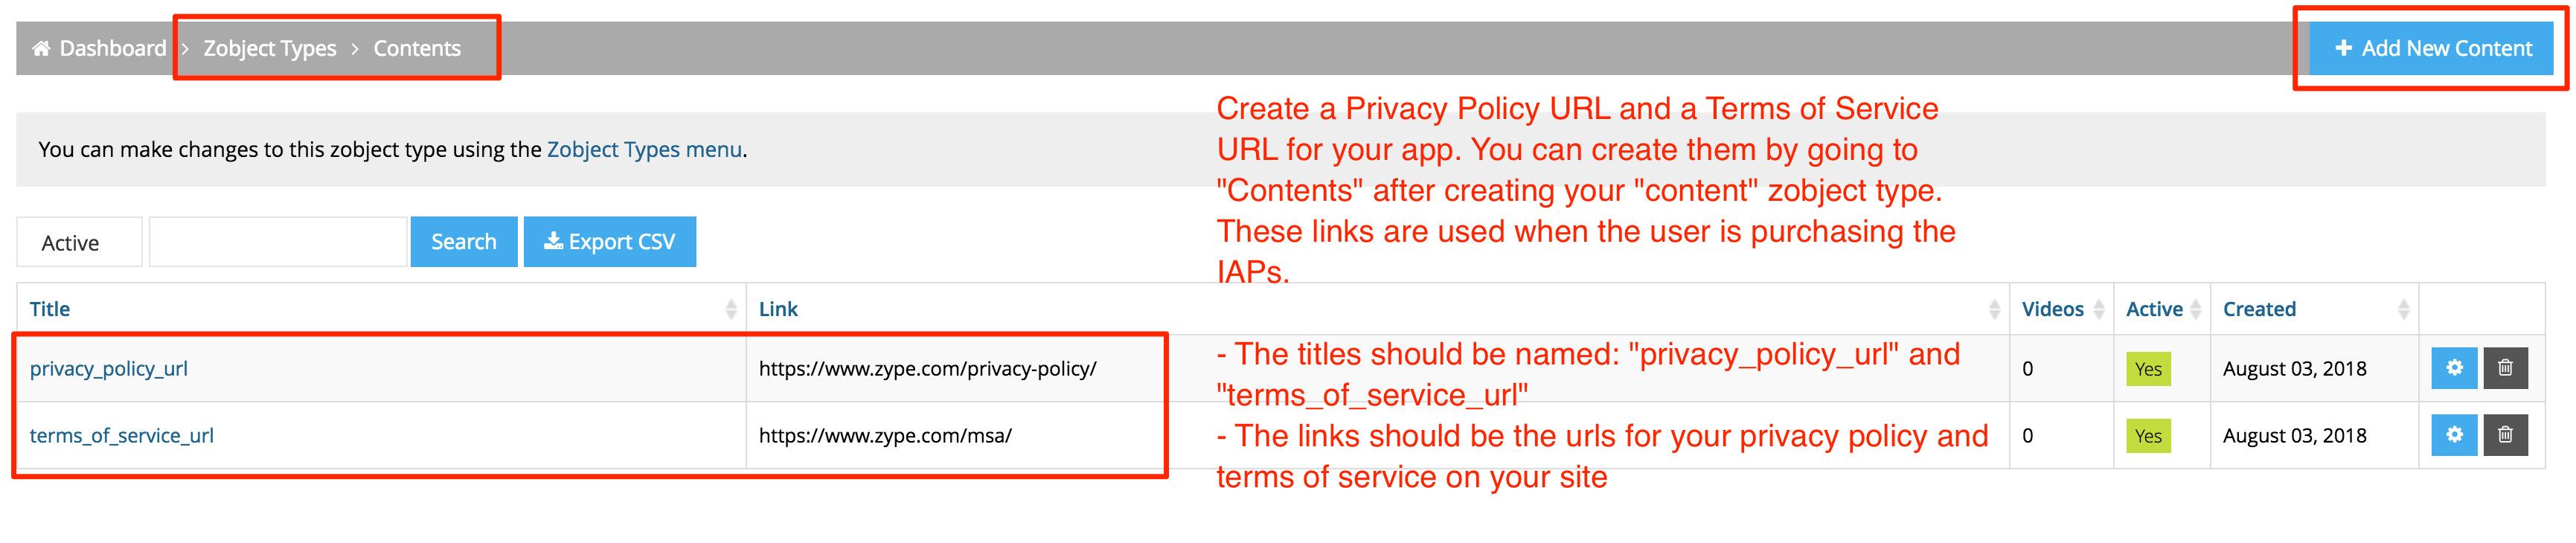 ios-privacy-policy-2.png